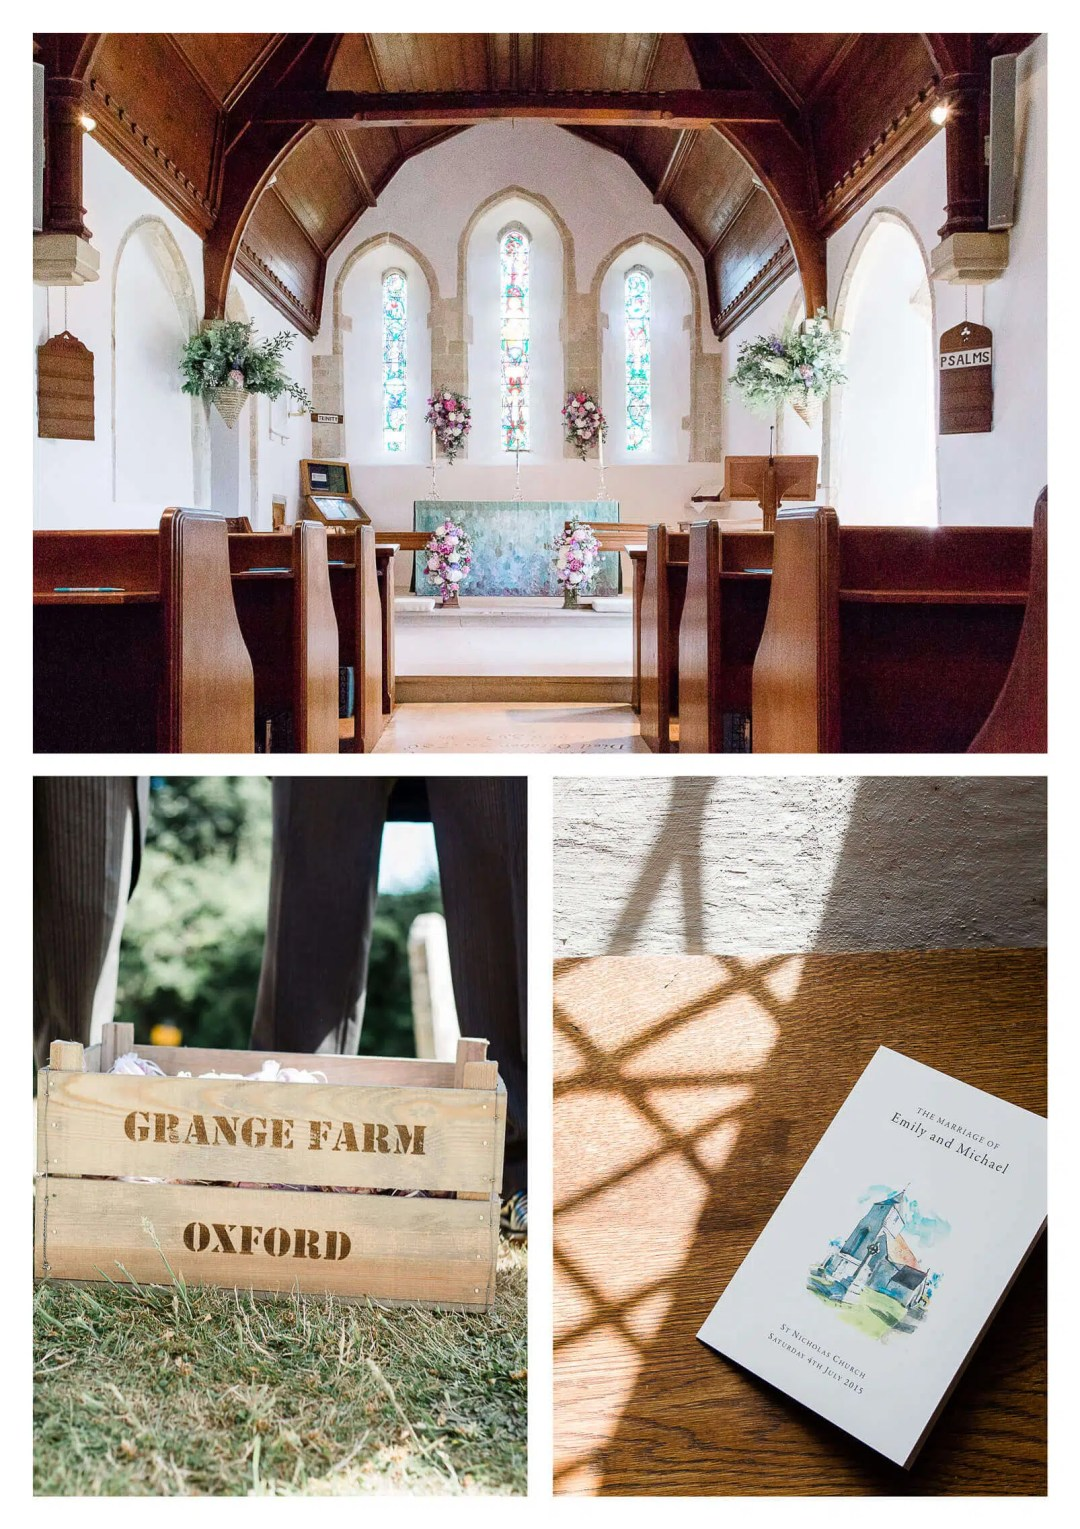 St Nicholas Parish Church wedding ceremony West Itchenor Chichester | West Sussex photographer